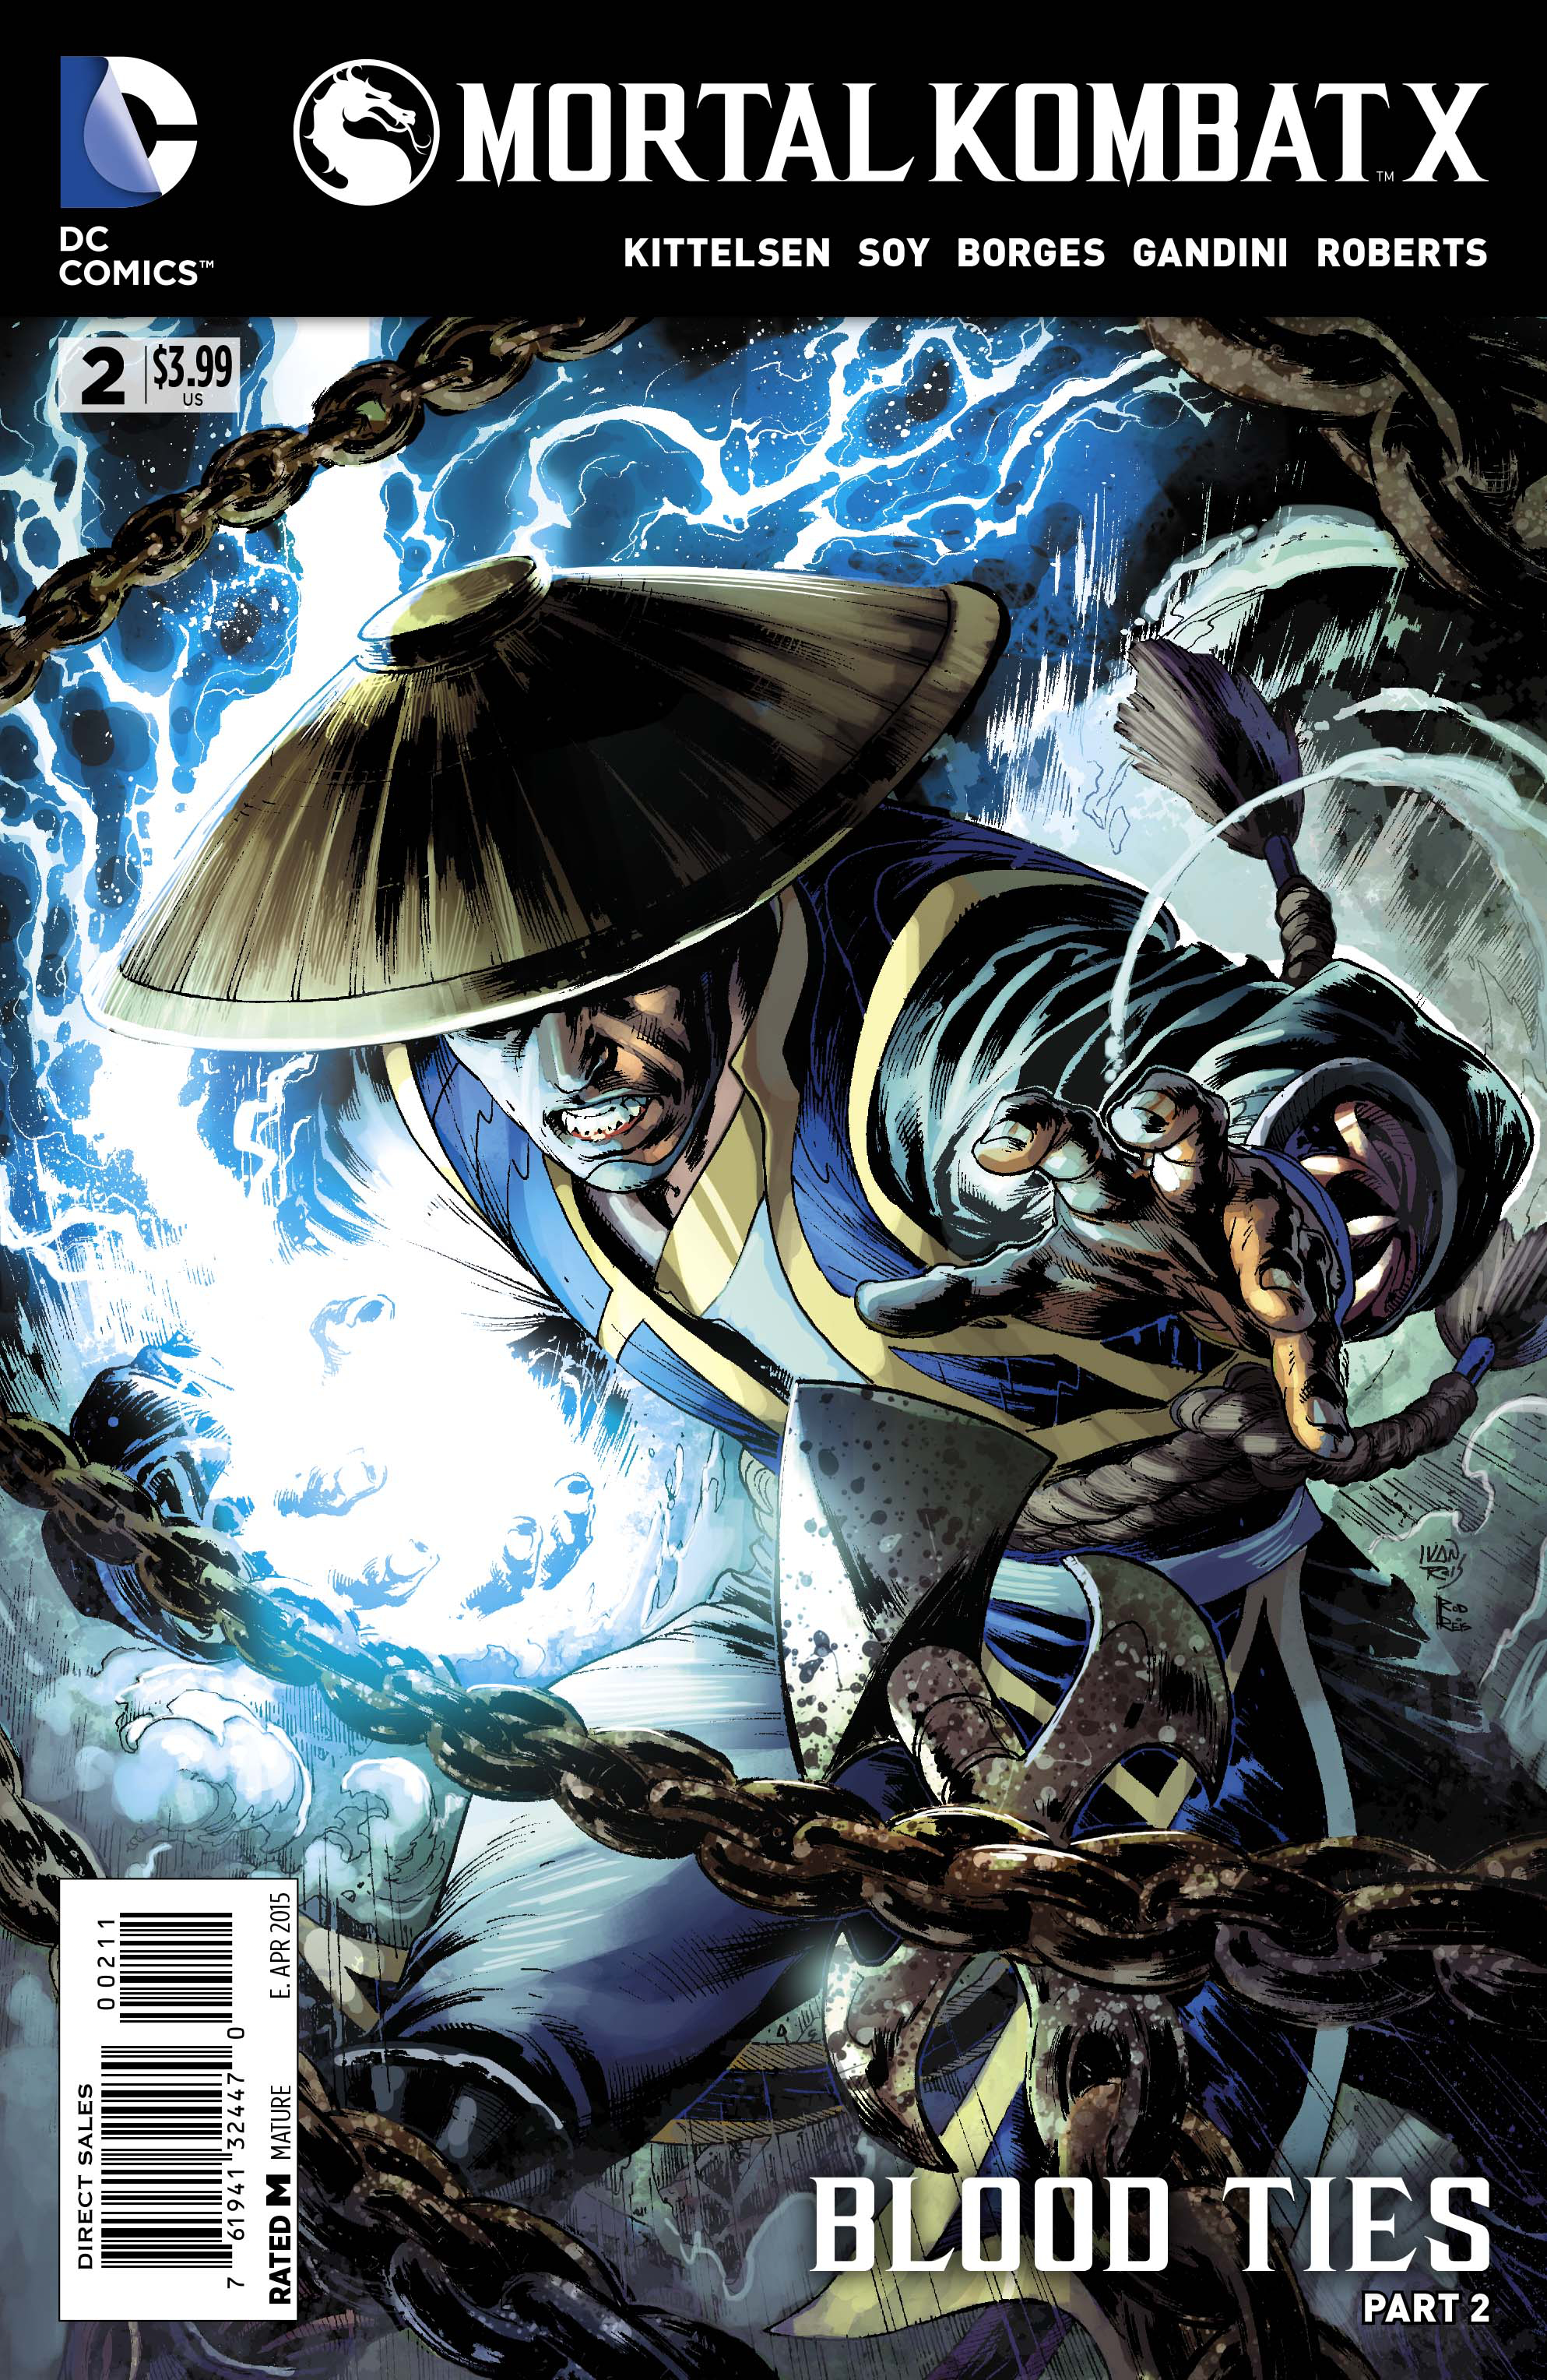 MORTAL KOMBAT X #2 (MR)